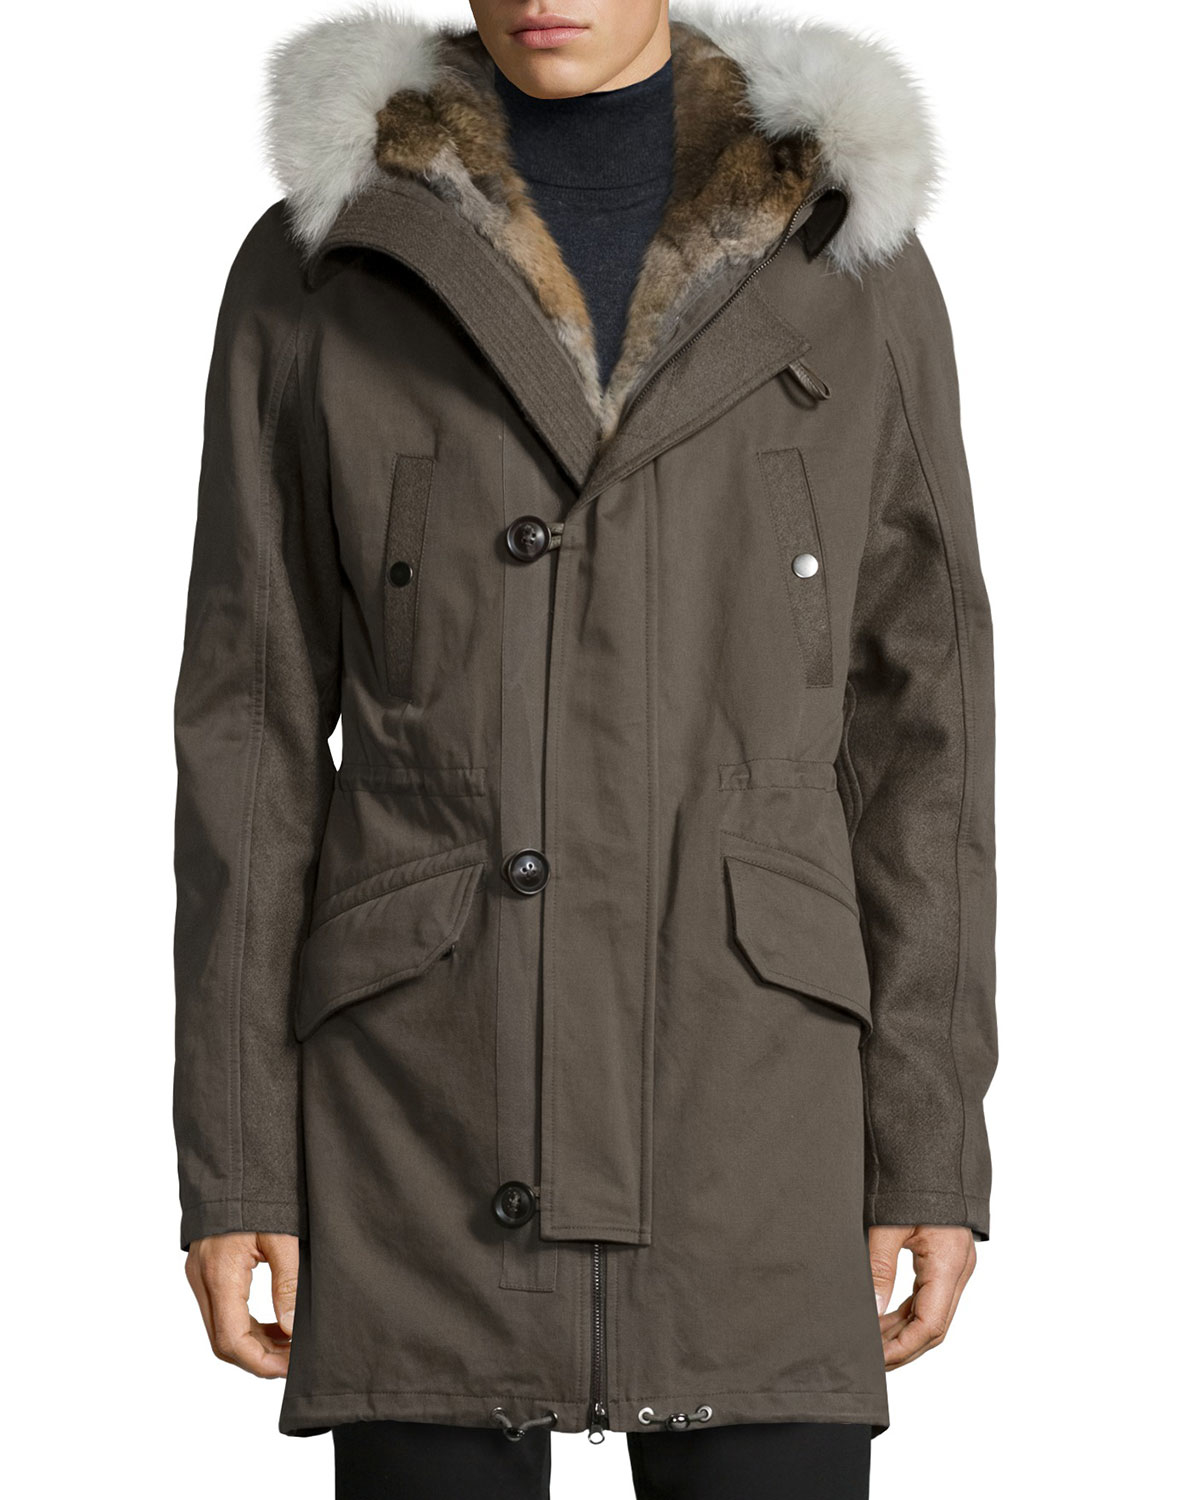 Yves salomon Fur-lined Hooded Fishtail Parka in Green for Men | Lyst